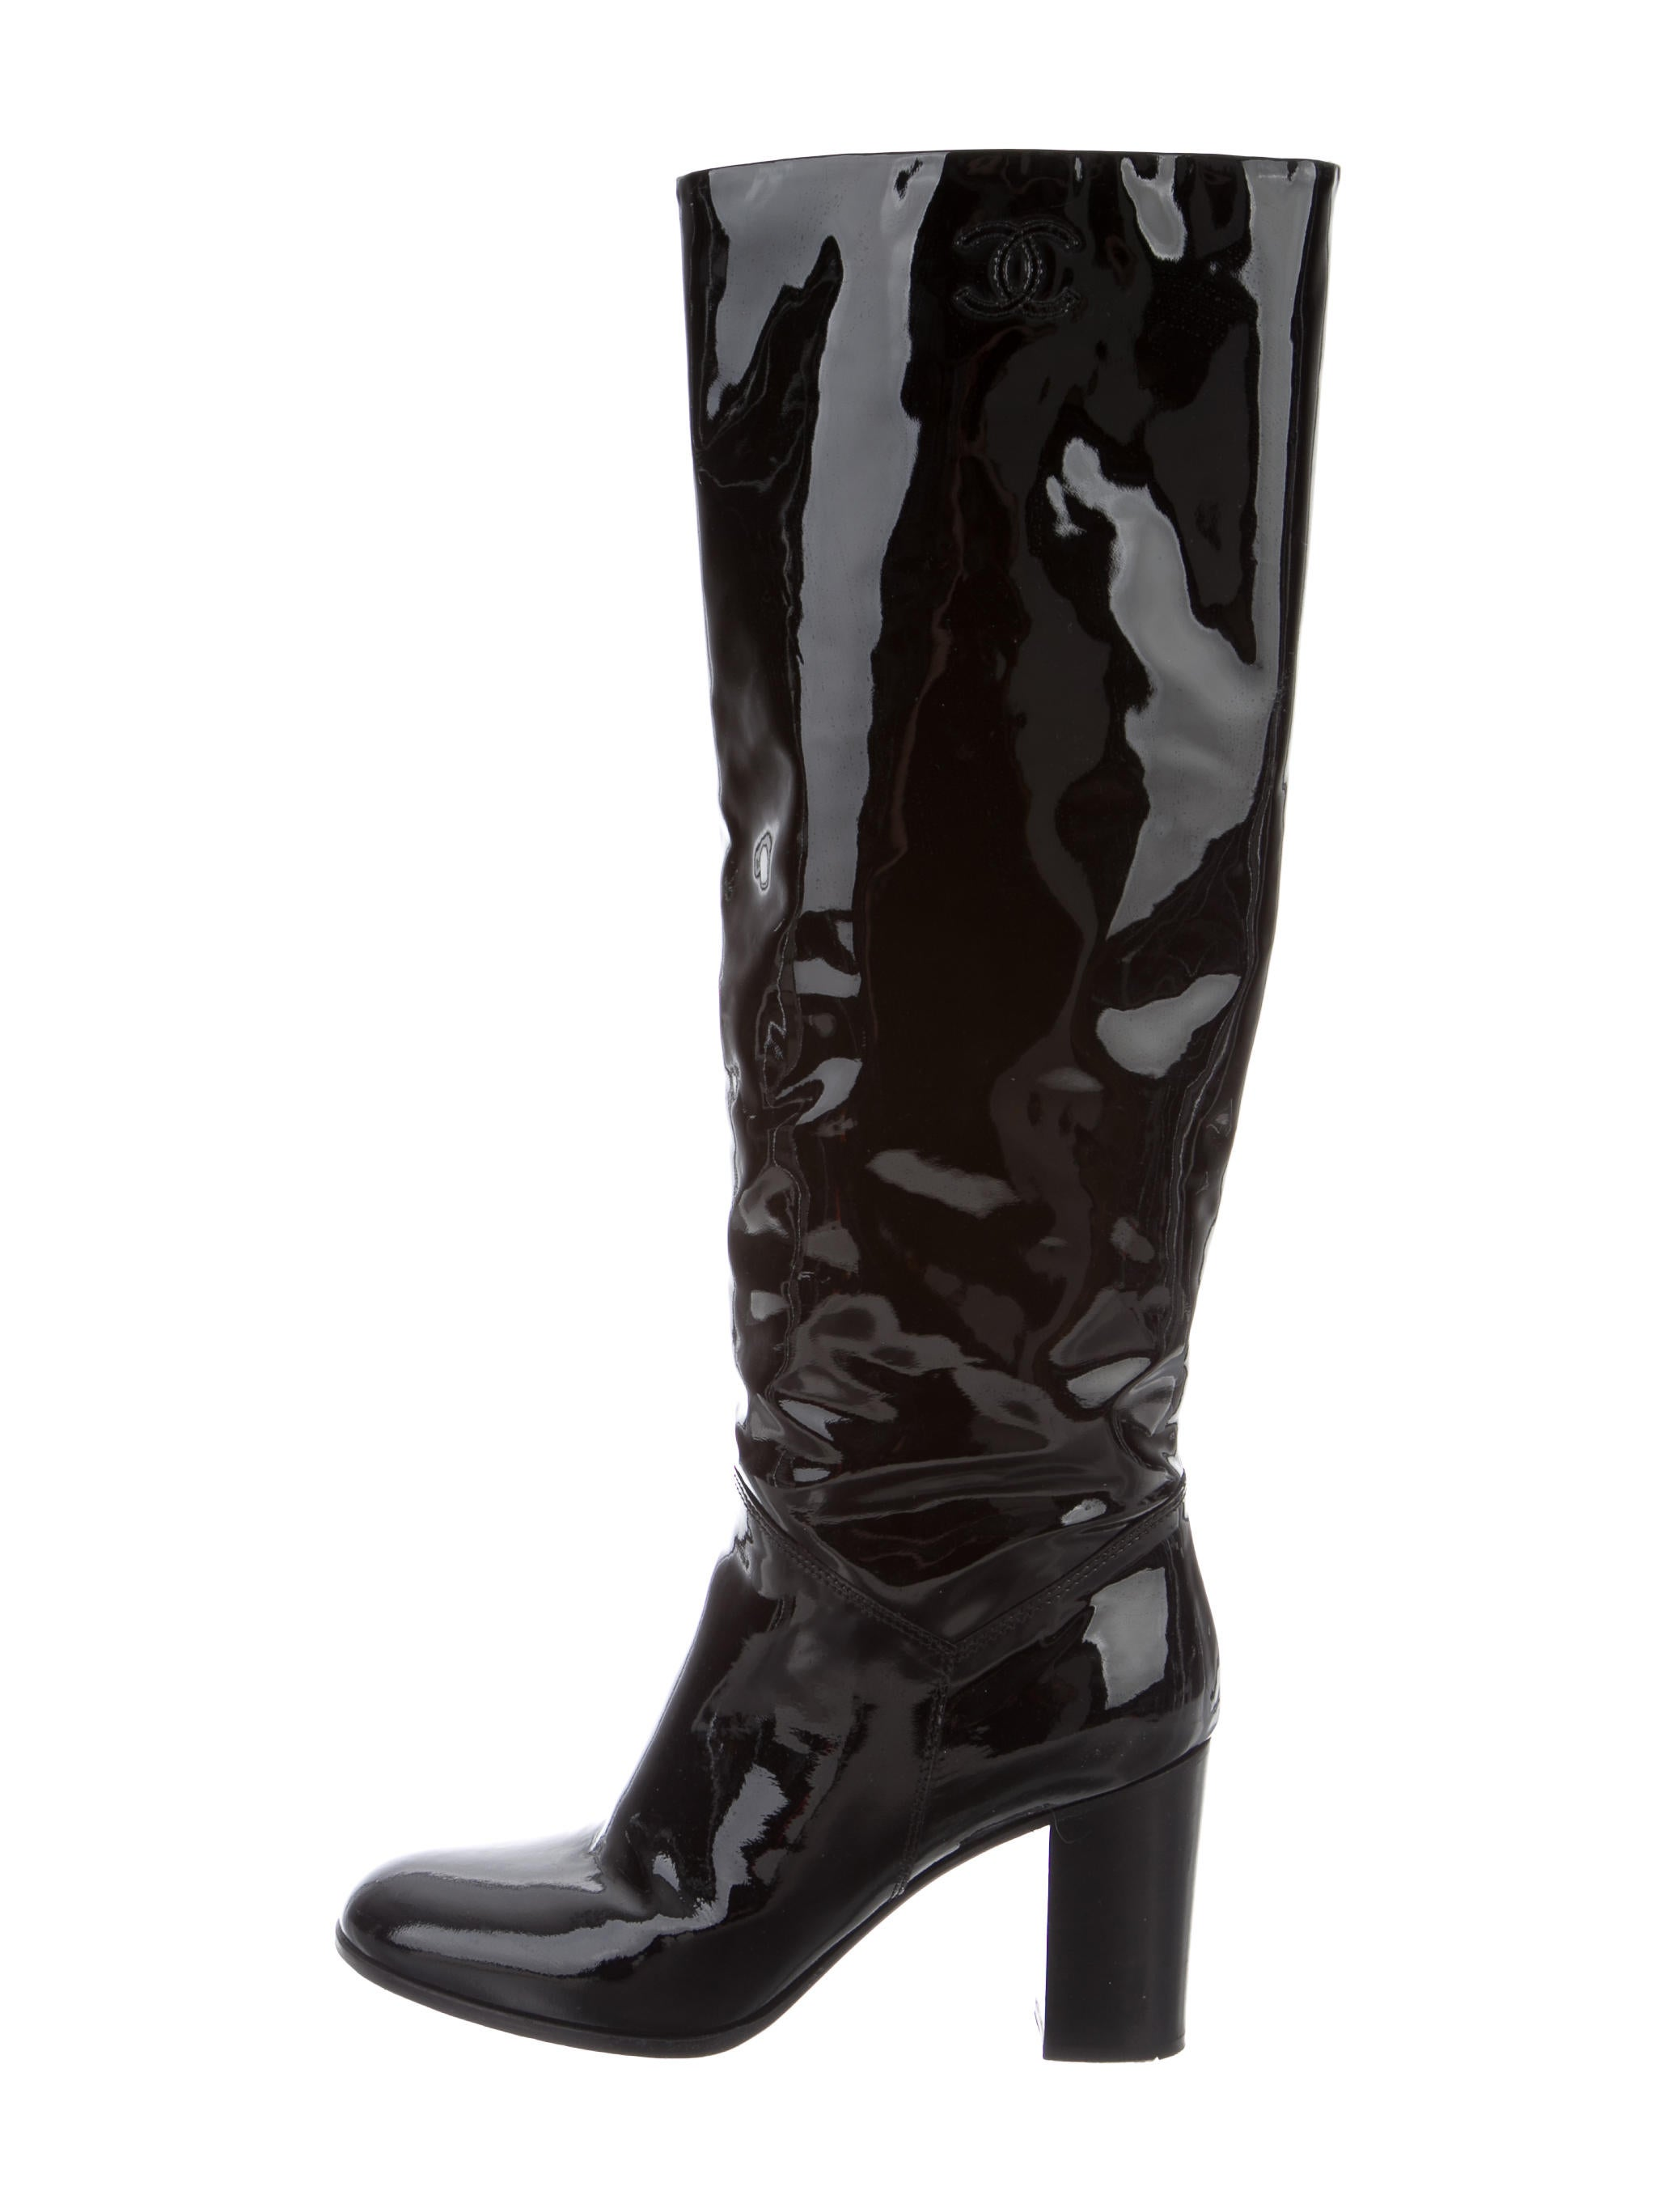 chanel patent leather knee high boots shoes cha159102